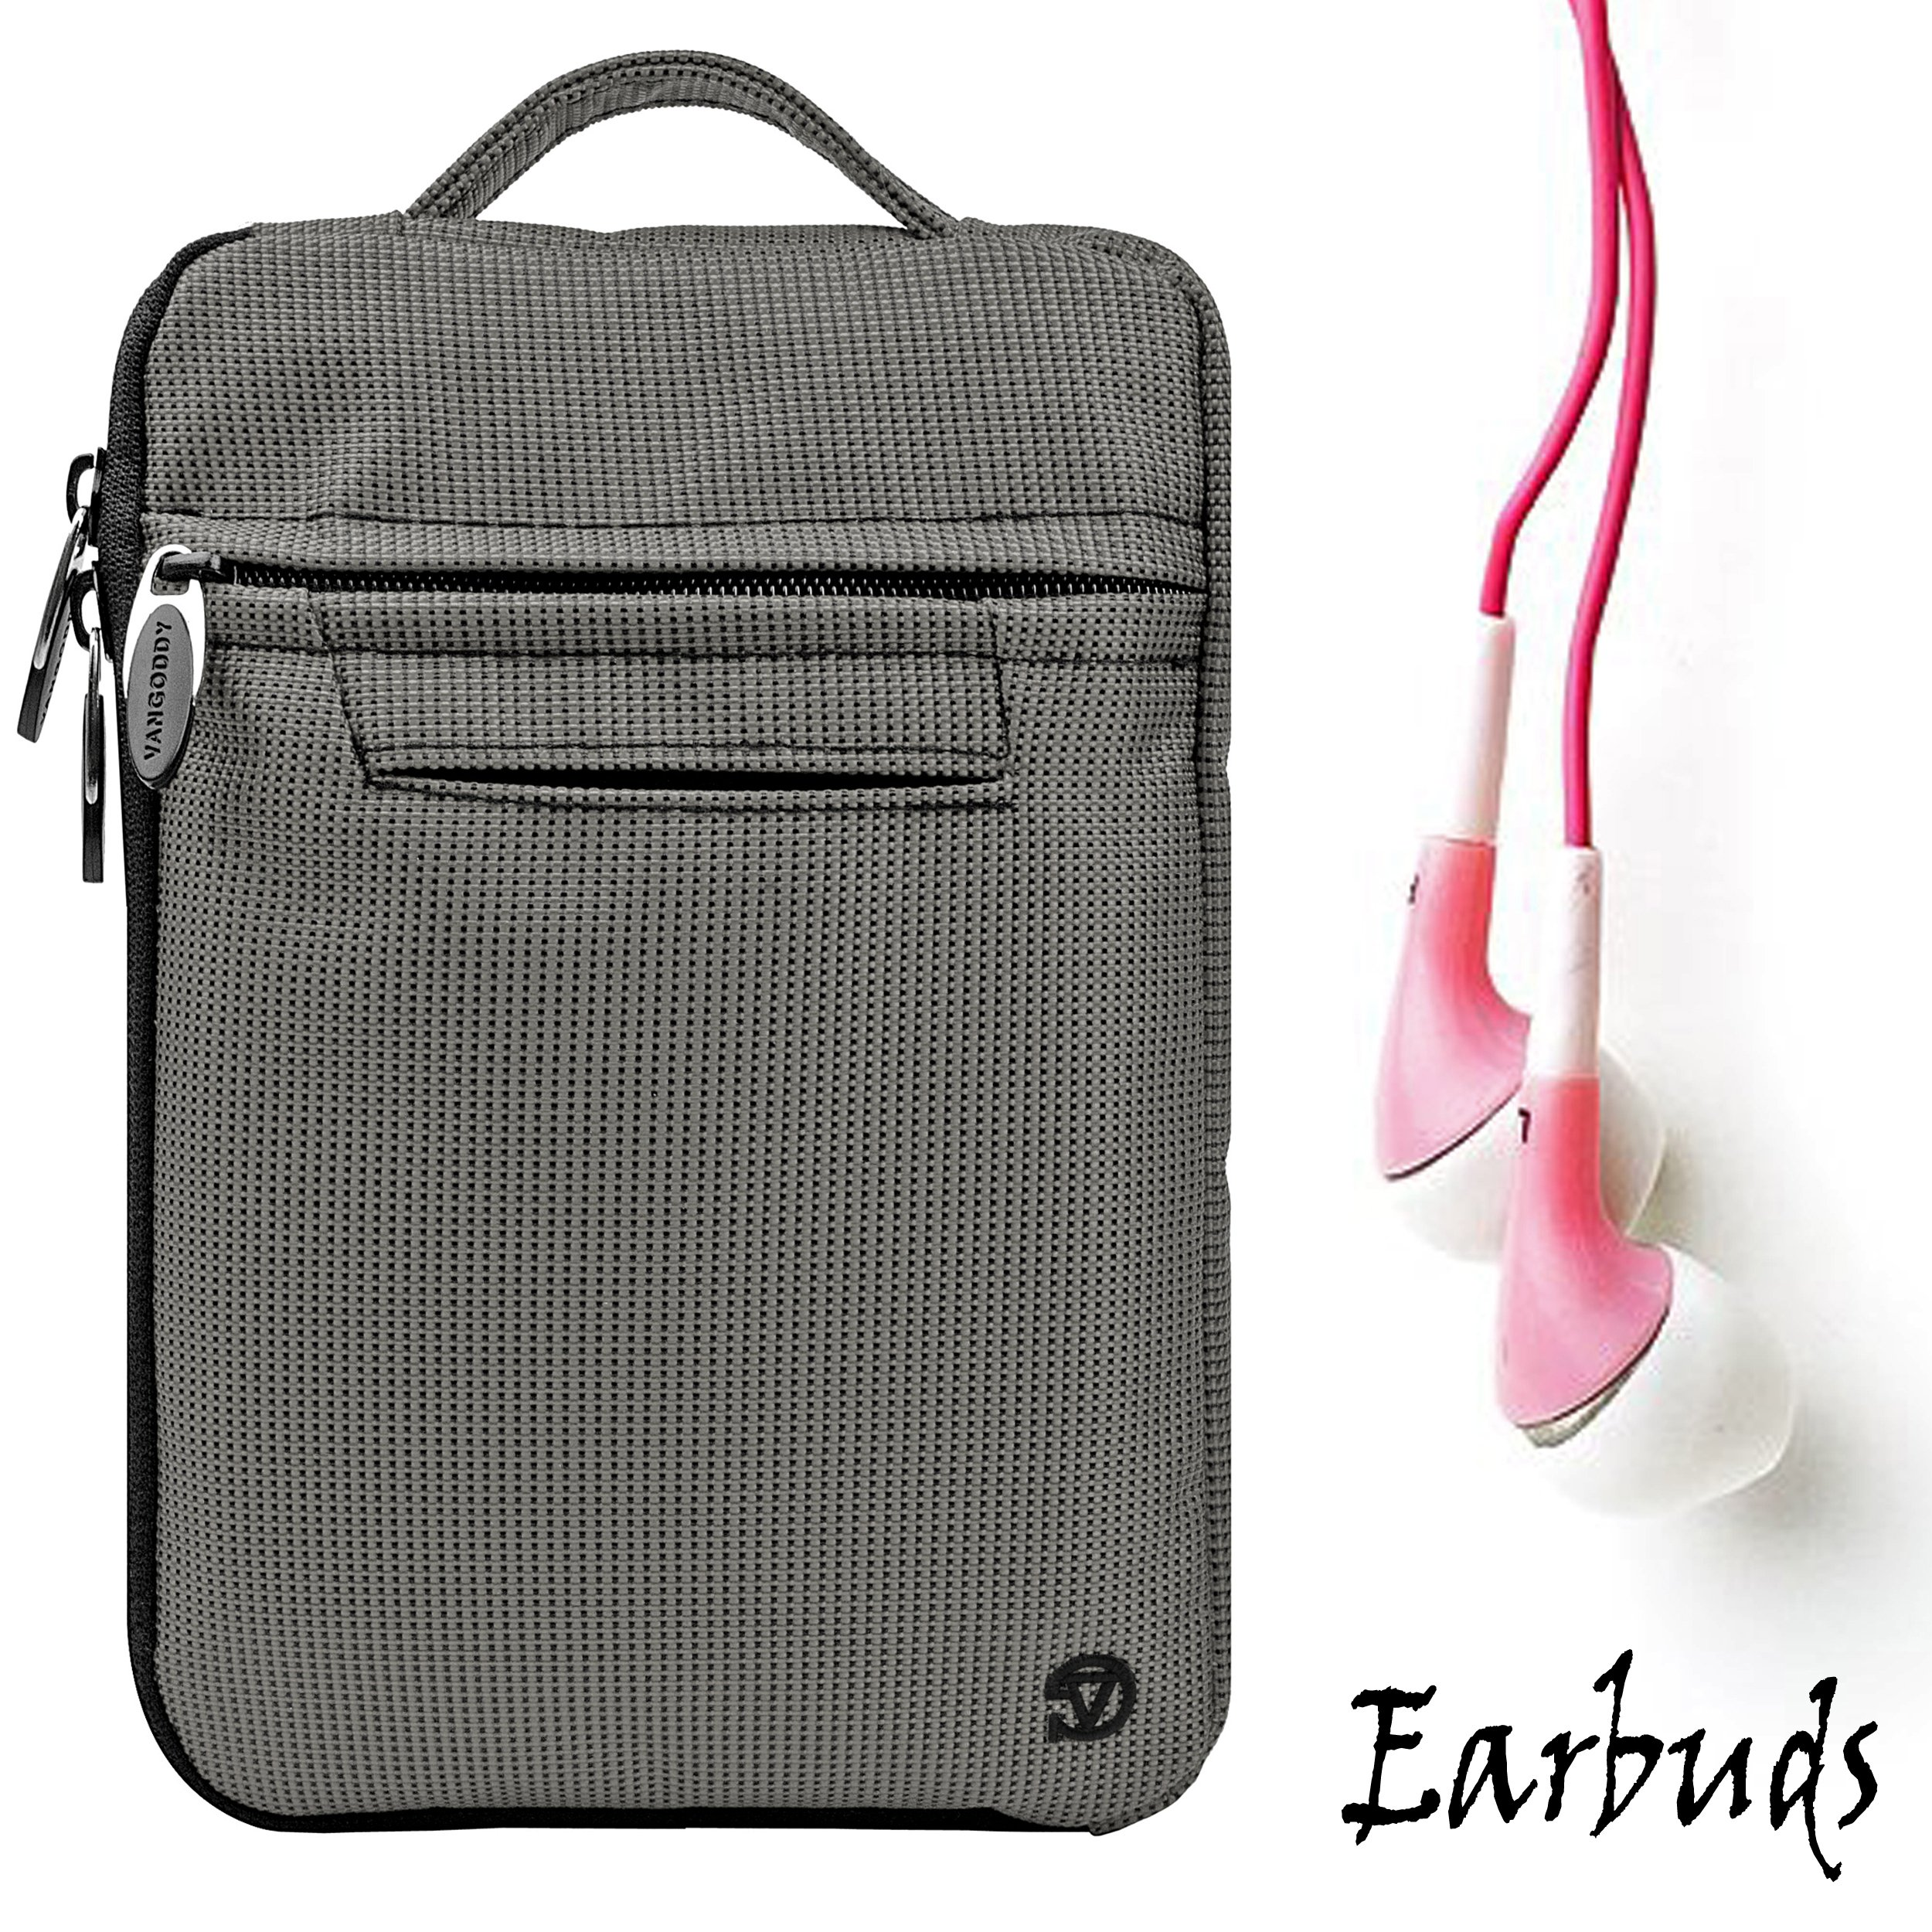 Gray Mighty Nylon Jacket Slim Compact Protective Sleeve Bag Case with accessories compartment for Pandigital Novel 7'' Color Multimedia eReader + Includes a Crystal Clear HD Noise Filter Ear buds Earphones Headphones ( 3.5mm Jack )